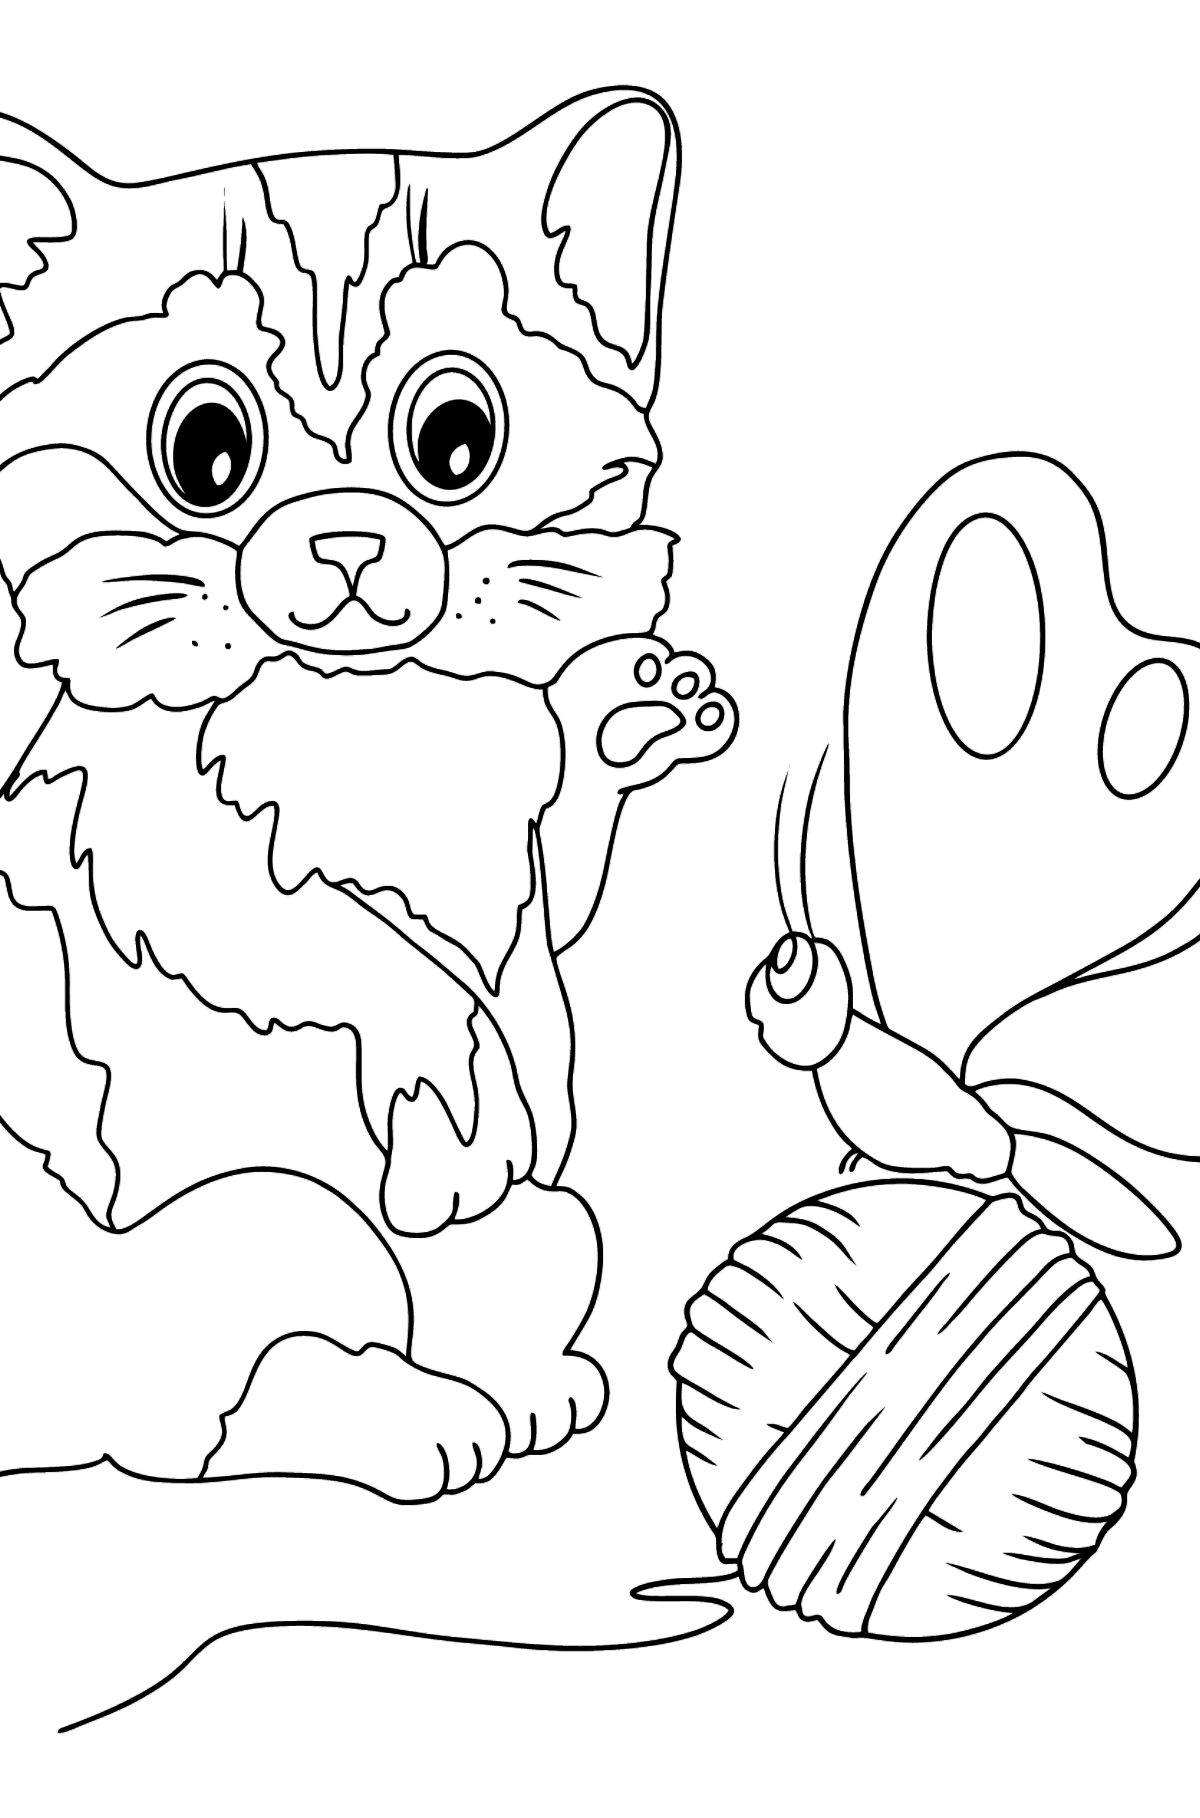 Coloring Page - A Cat is Playing with a Butterfly - Coloring Pages for Kids